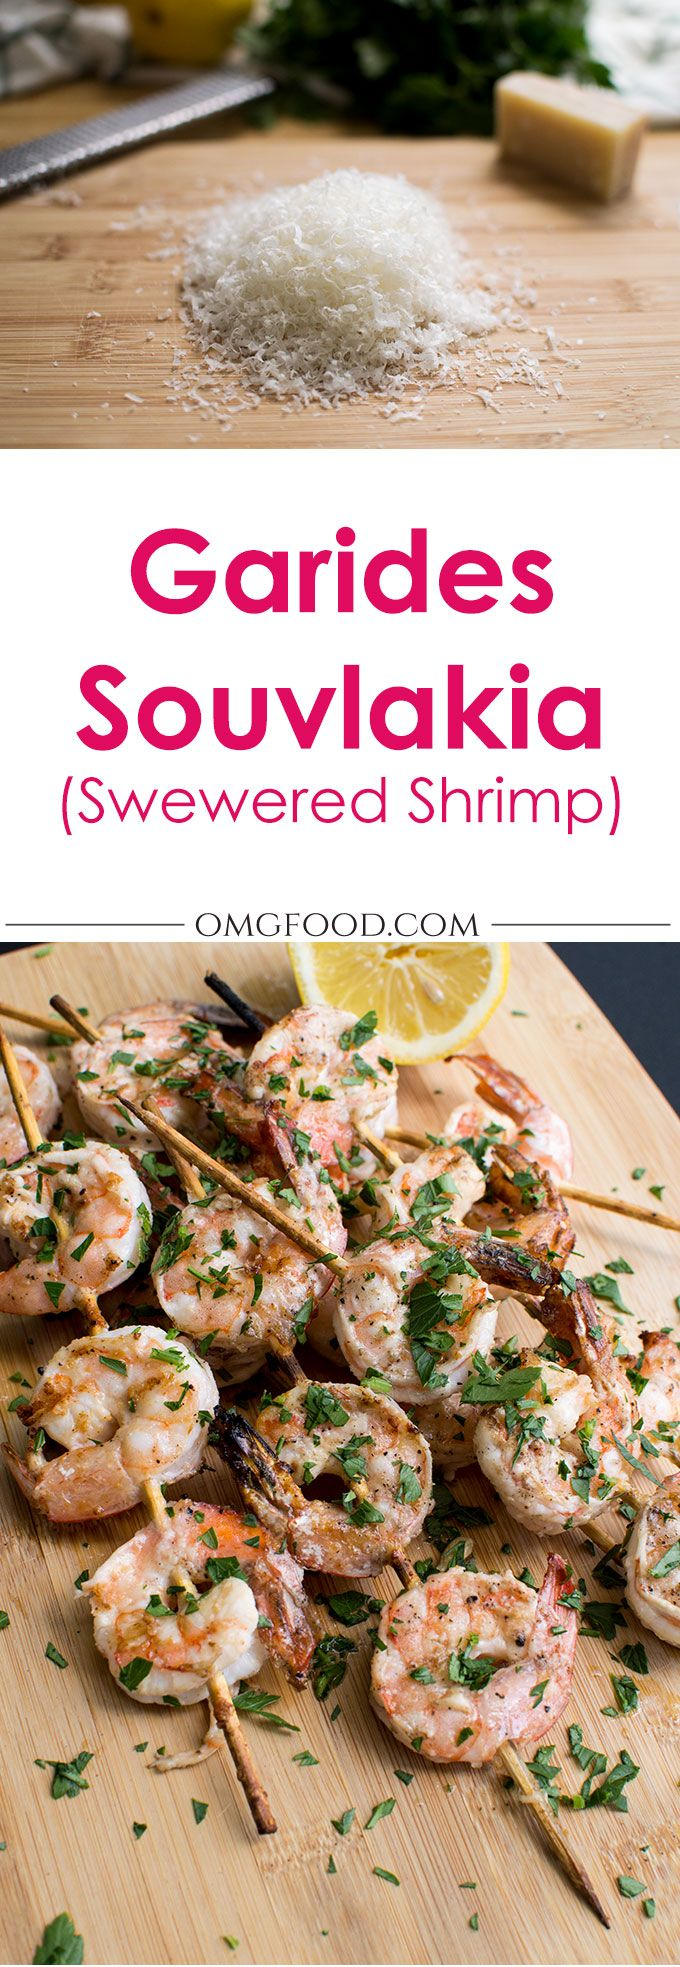 Garides Souvlakia - Greek swewered shrimp made with lemon, olive oil, and grated kefalotiri cheese. Grill or broil it!| omgfood.com